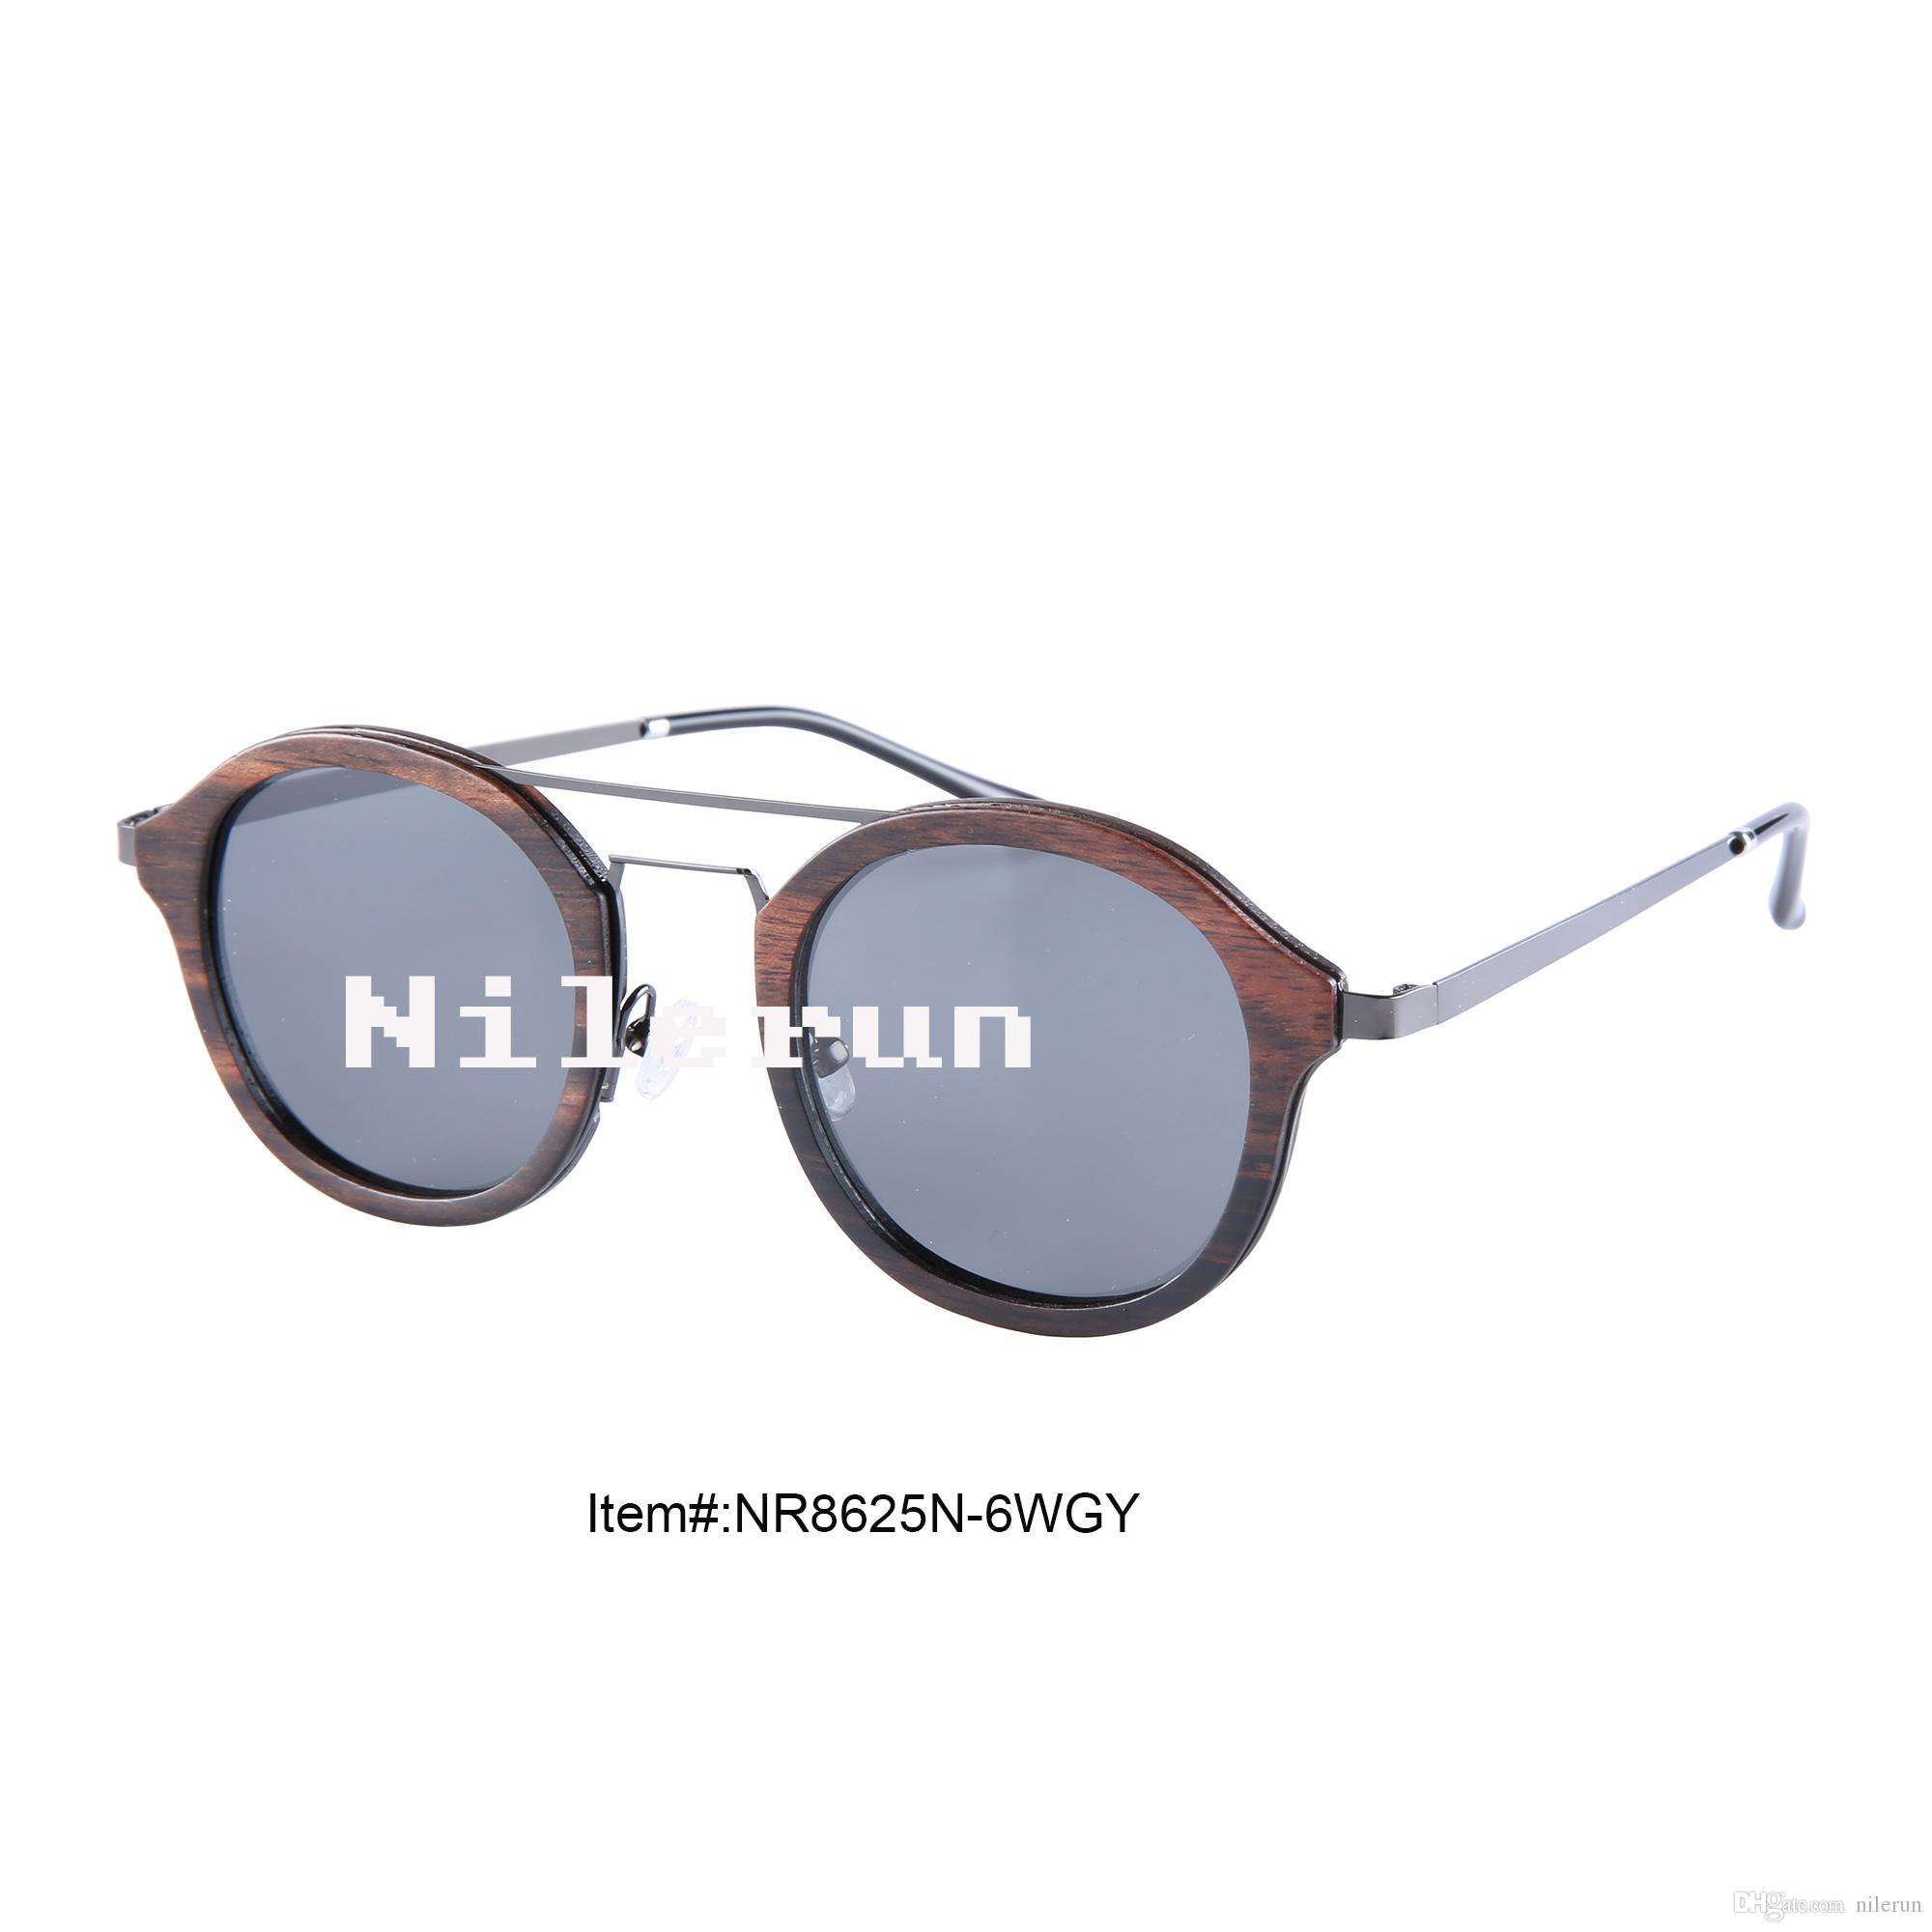 6ca2f717f8 Unisex Round Gray Metal Ebony Wood Sunglasses Unisex Sunglasses Ebony Wood  Sunglasses Gray Metal Sunglasses Online with  46.4 Piece on Nilerun s Store  ...